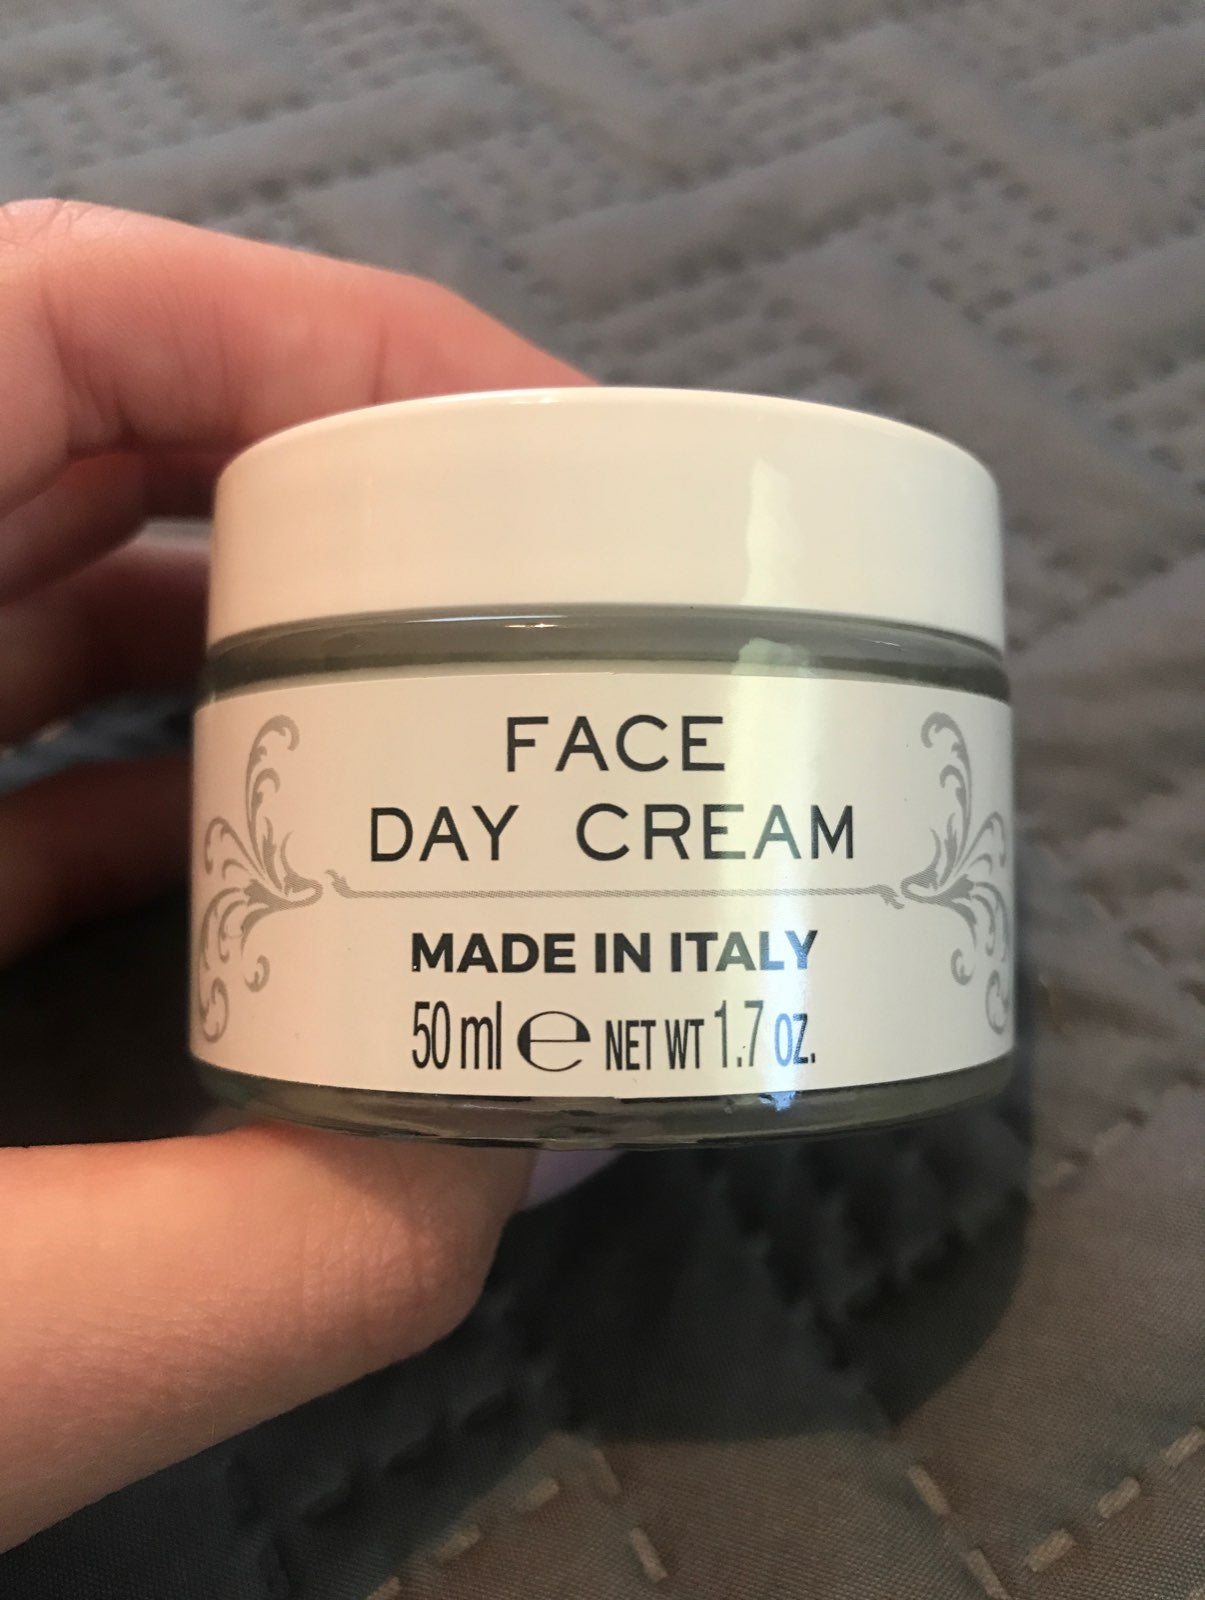 mercari - Face Day Cream 1.7 oz